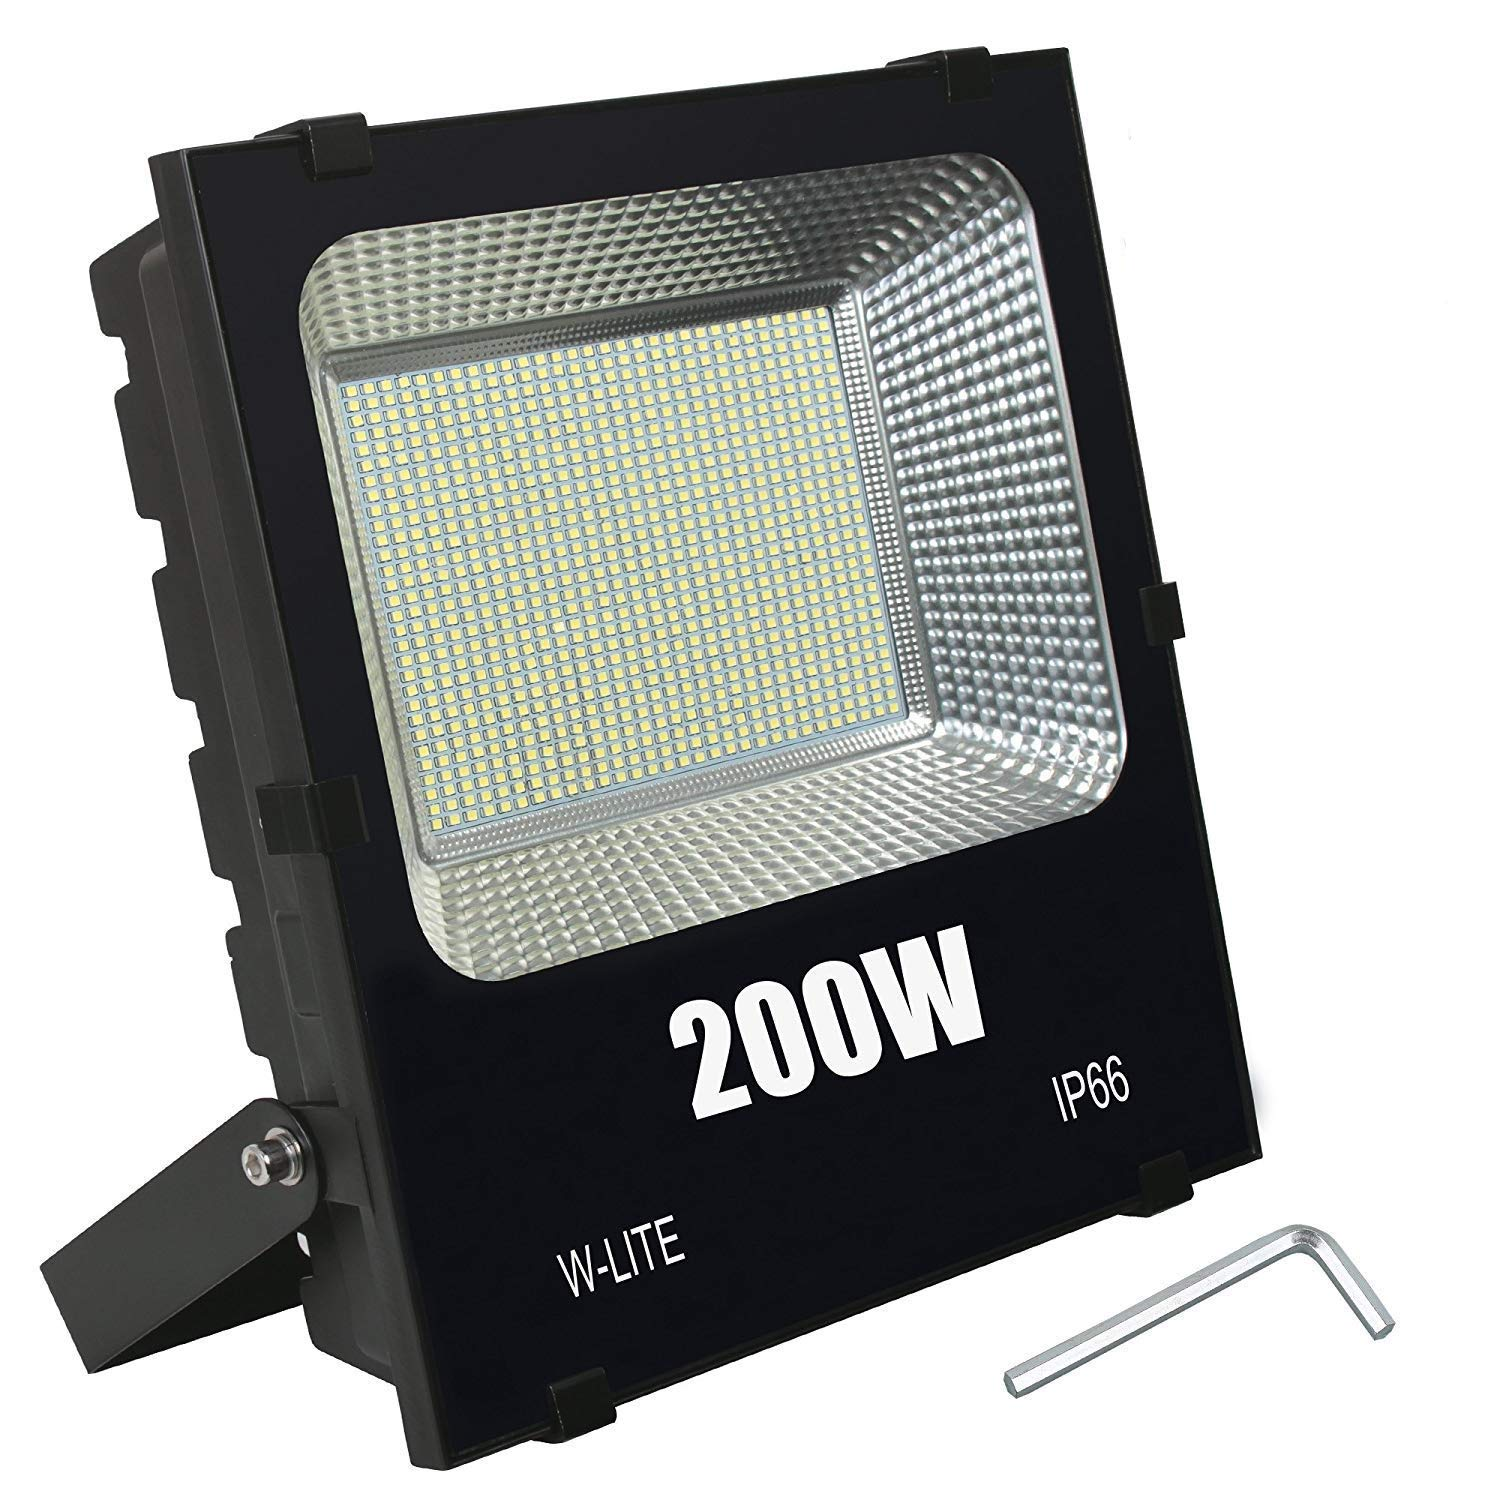 W-LITE 200W LED Flood Light, Super Bright 400 LED, 22000LM, Soft Daylight White, Full Power, 1600W Equivalent, Waterproof Outdoor Lighting, Security Lamps, 86-265V Input Voltage (200W)